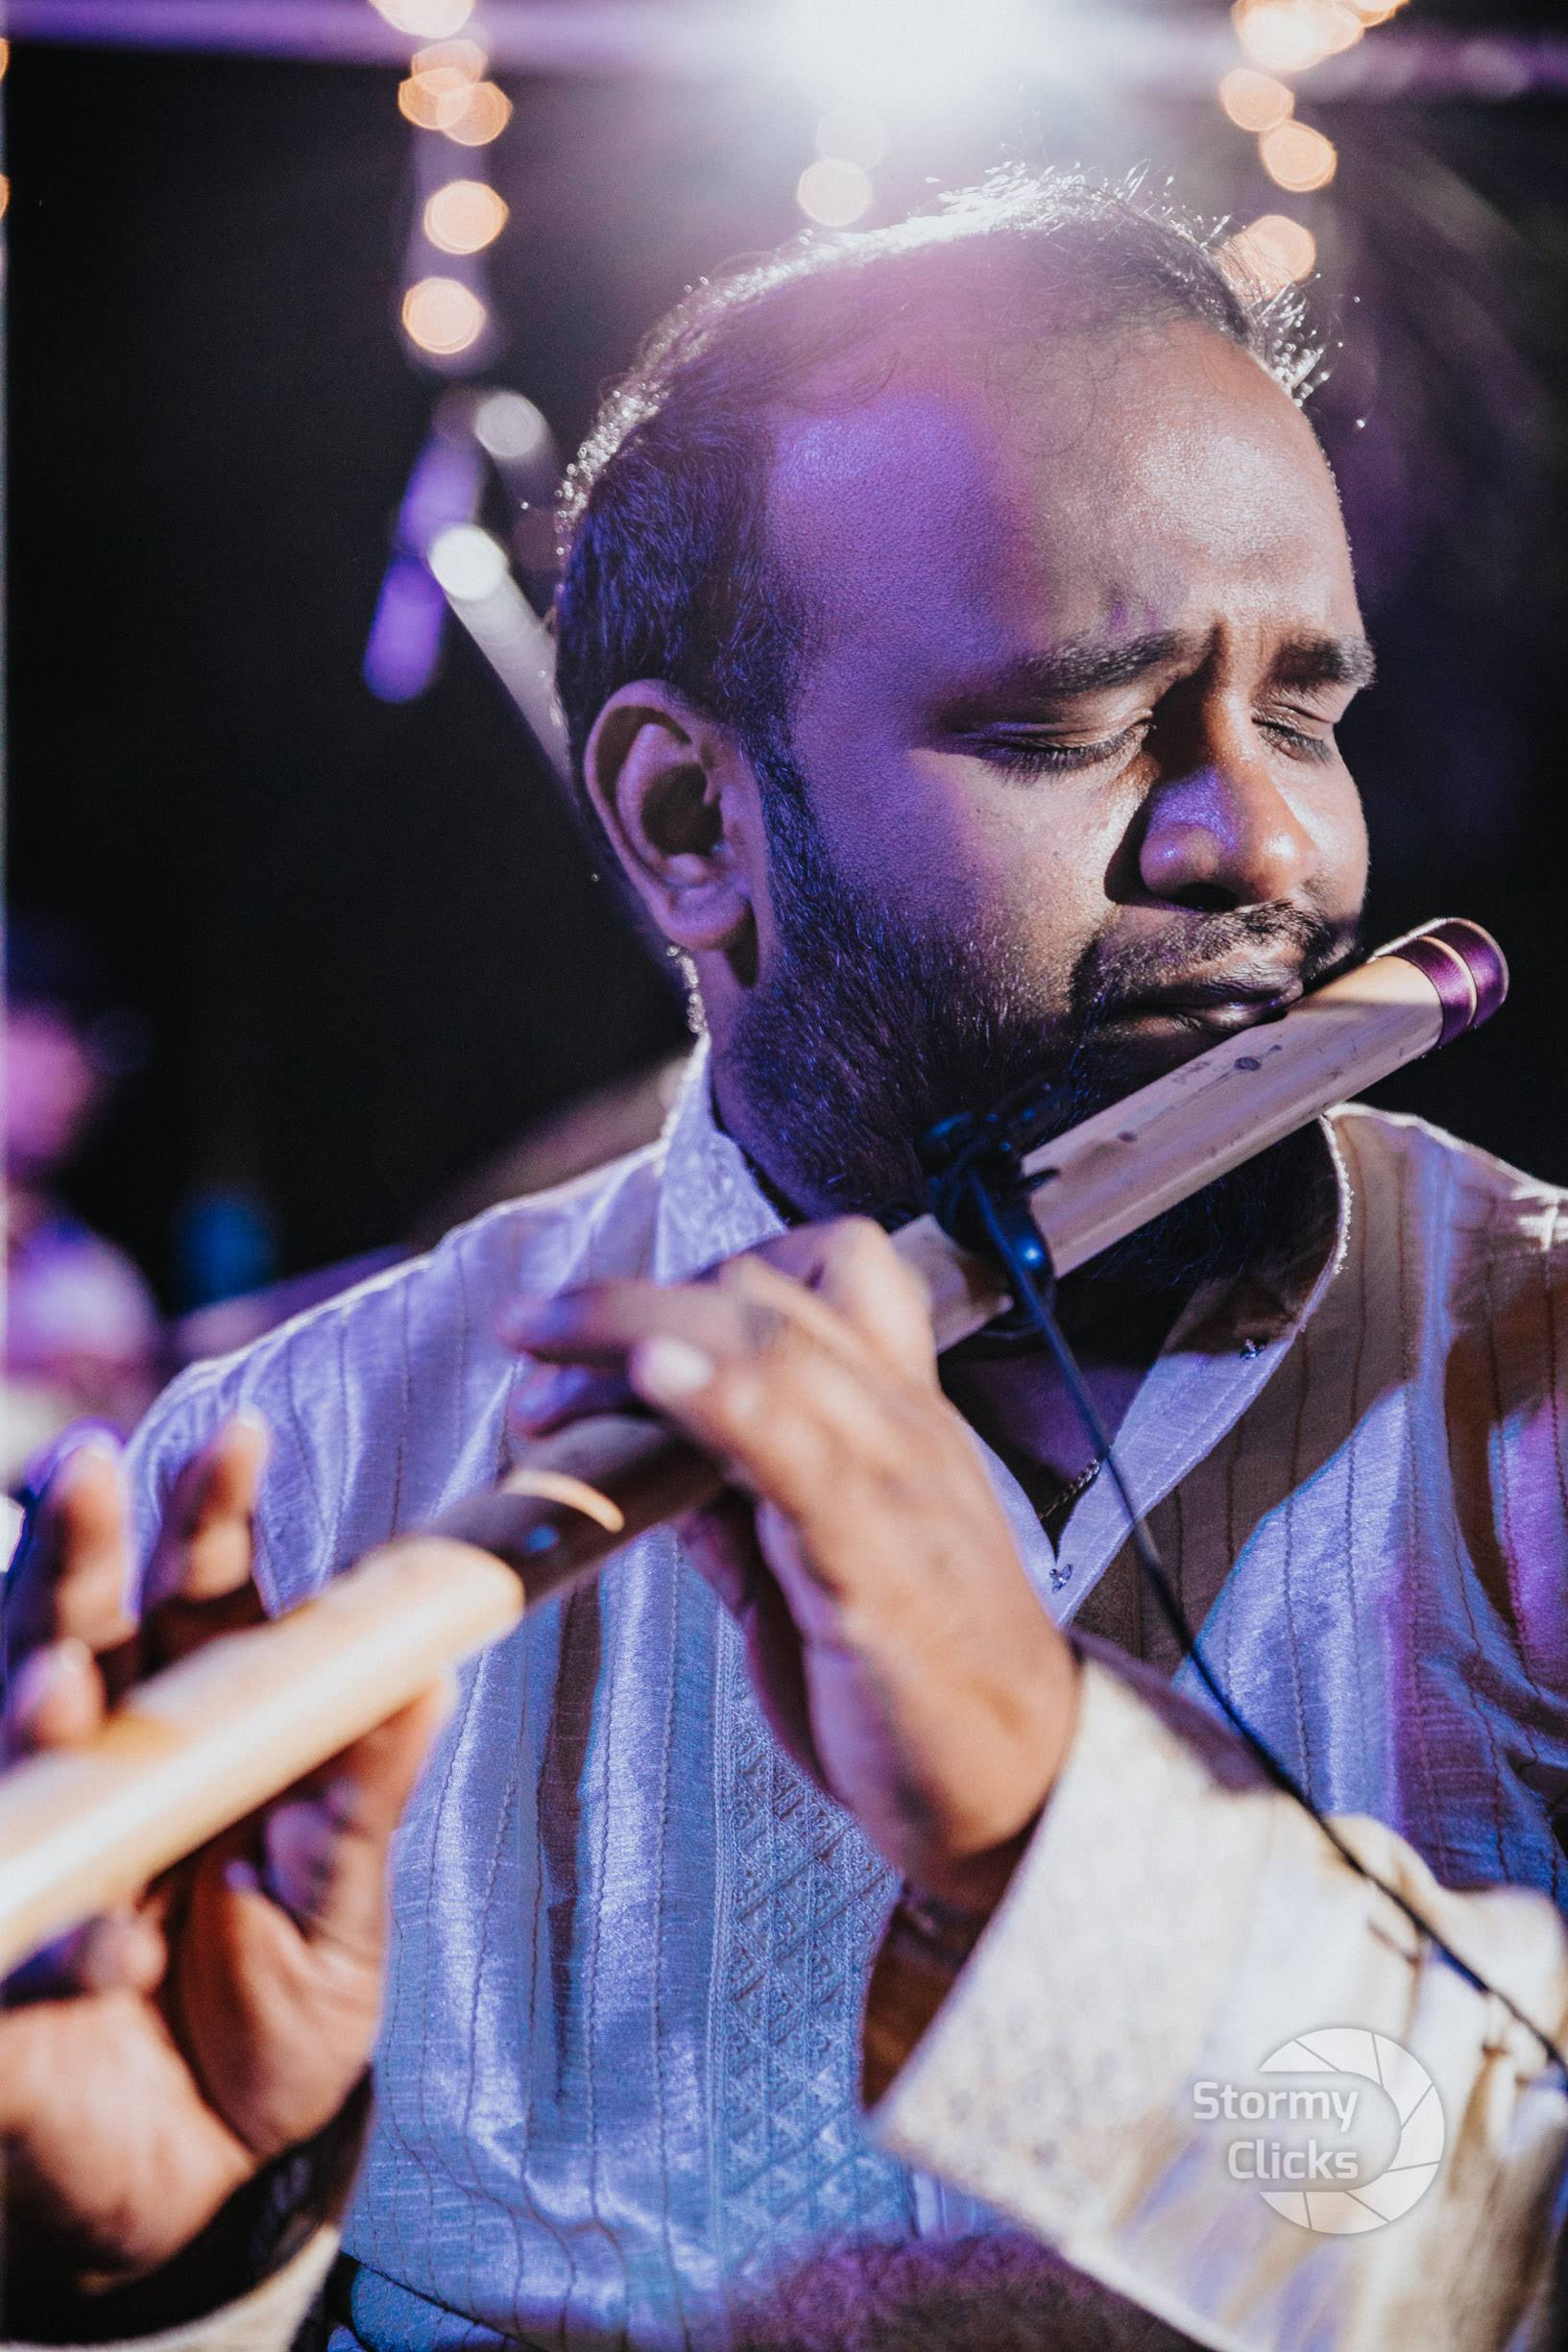 Vishnu Vijay is an Indian music composer and one of the most prolific flautists in the South Indian film industry.  He is well known as the music composer for malayalam film Guppy.